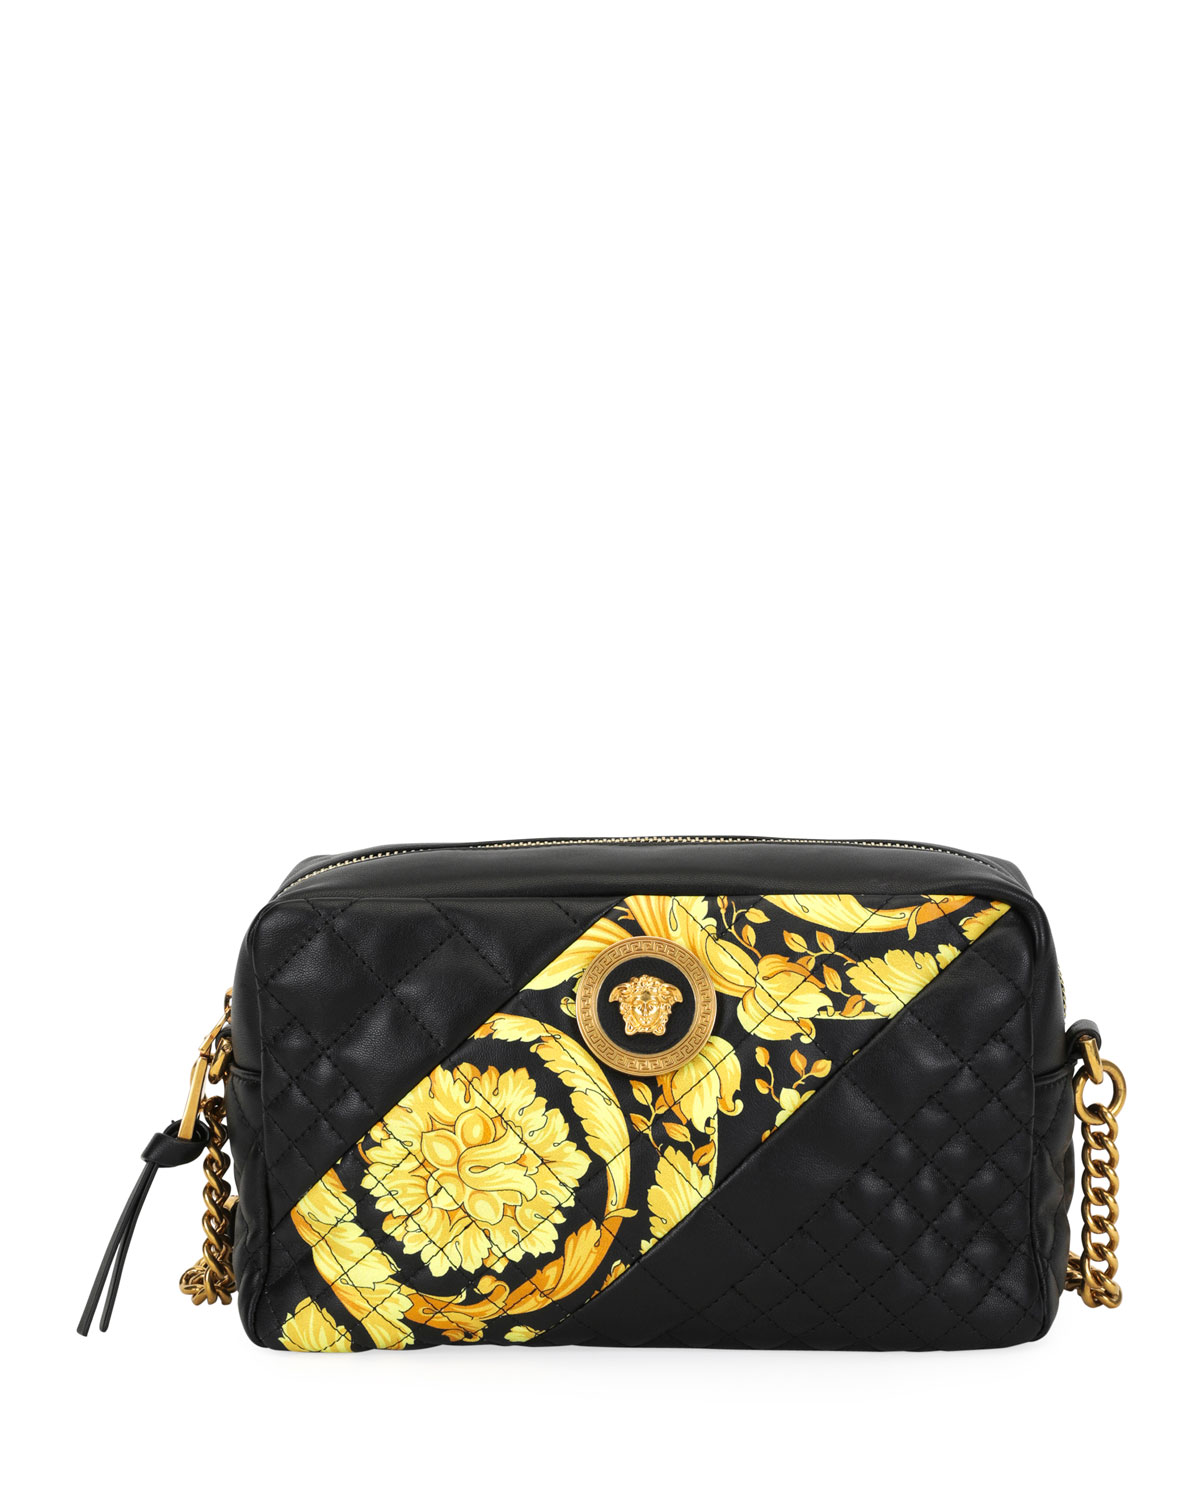 355a9972ecb3 Versace Icon Small Quilted Napa Camera Bag with Barocco Print ...